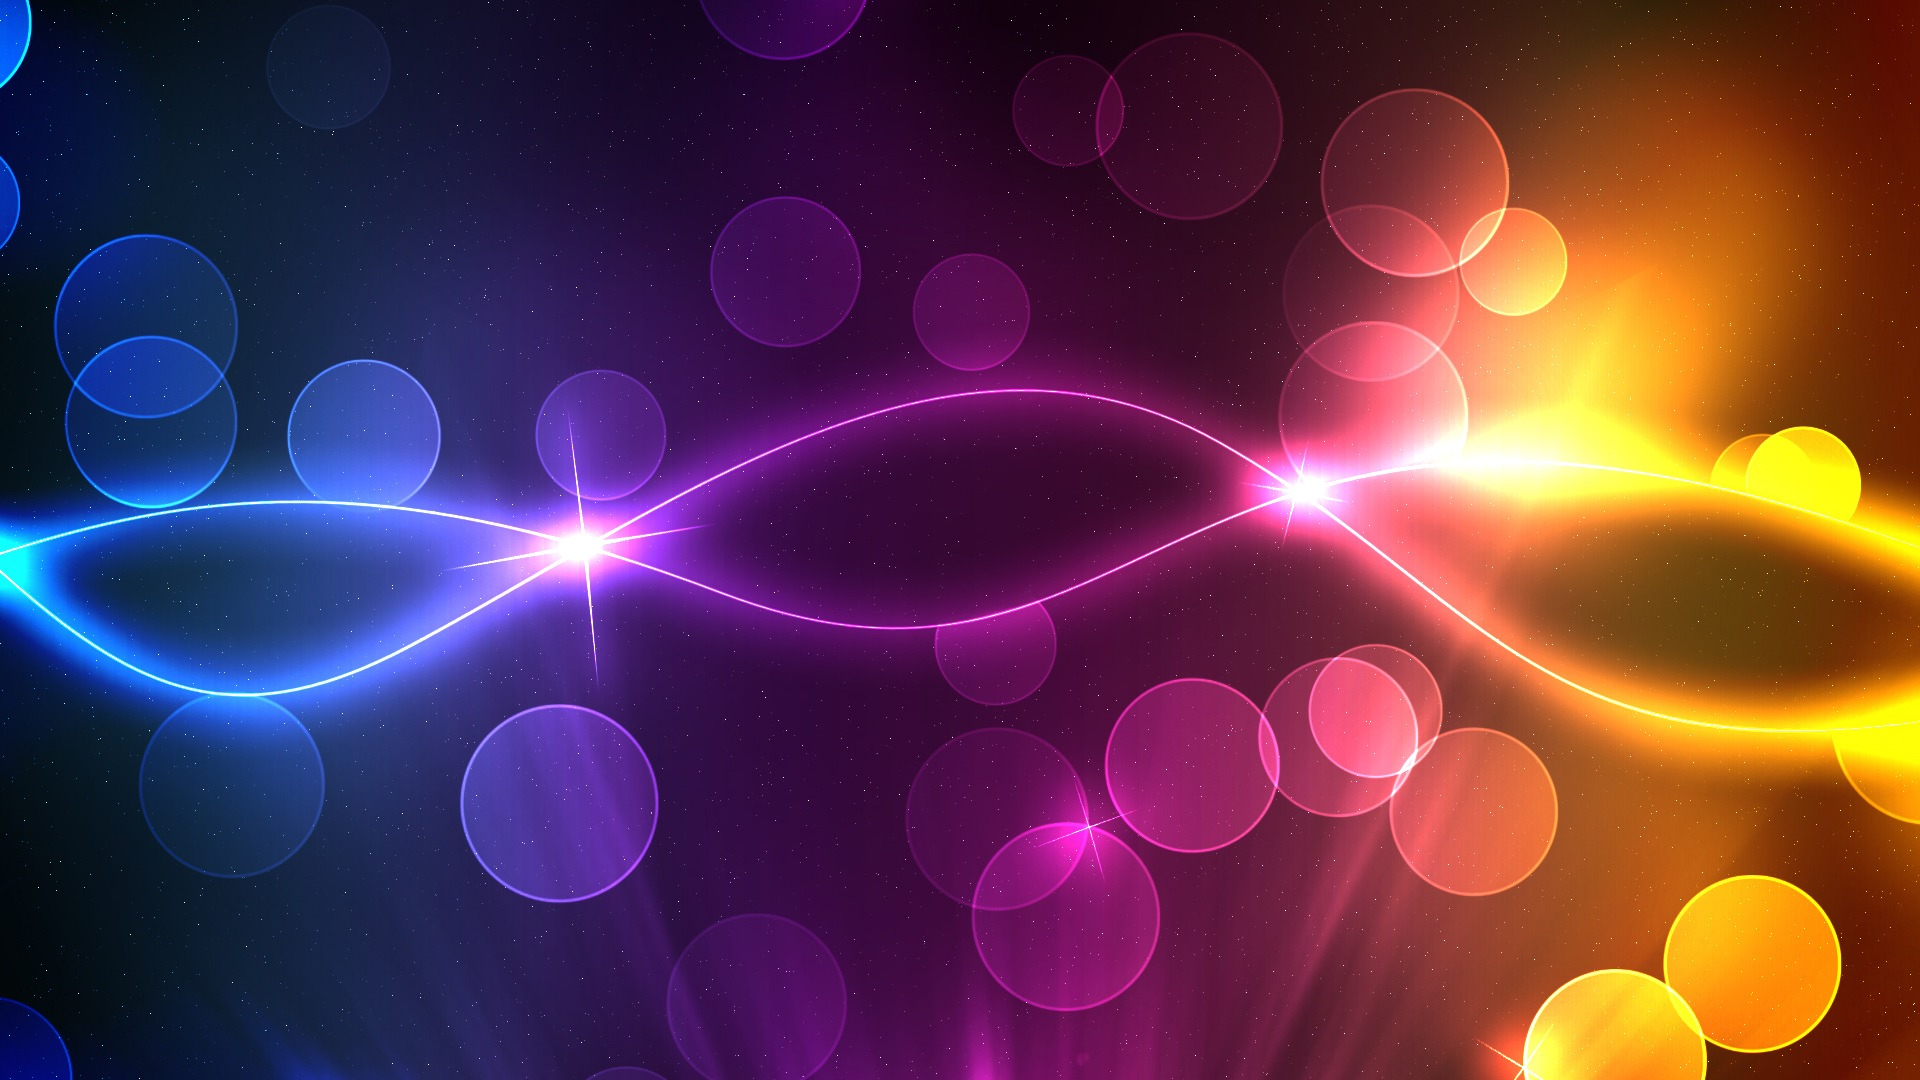 download-wallpaper-bokeh-starflight-abstract